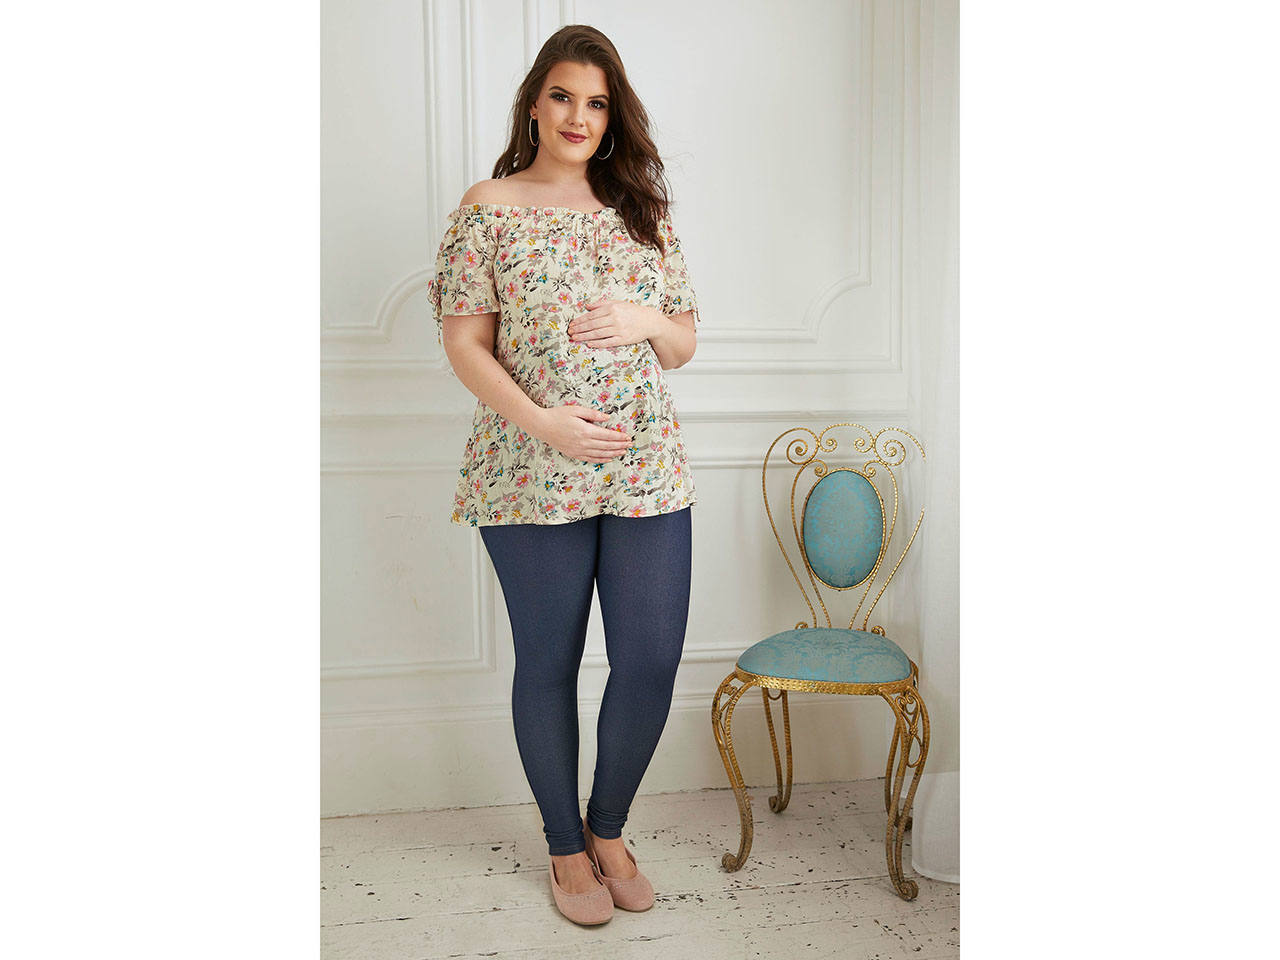 61845bae3 A pregnant woman in a floral maternity top Photo  Yours Clothing